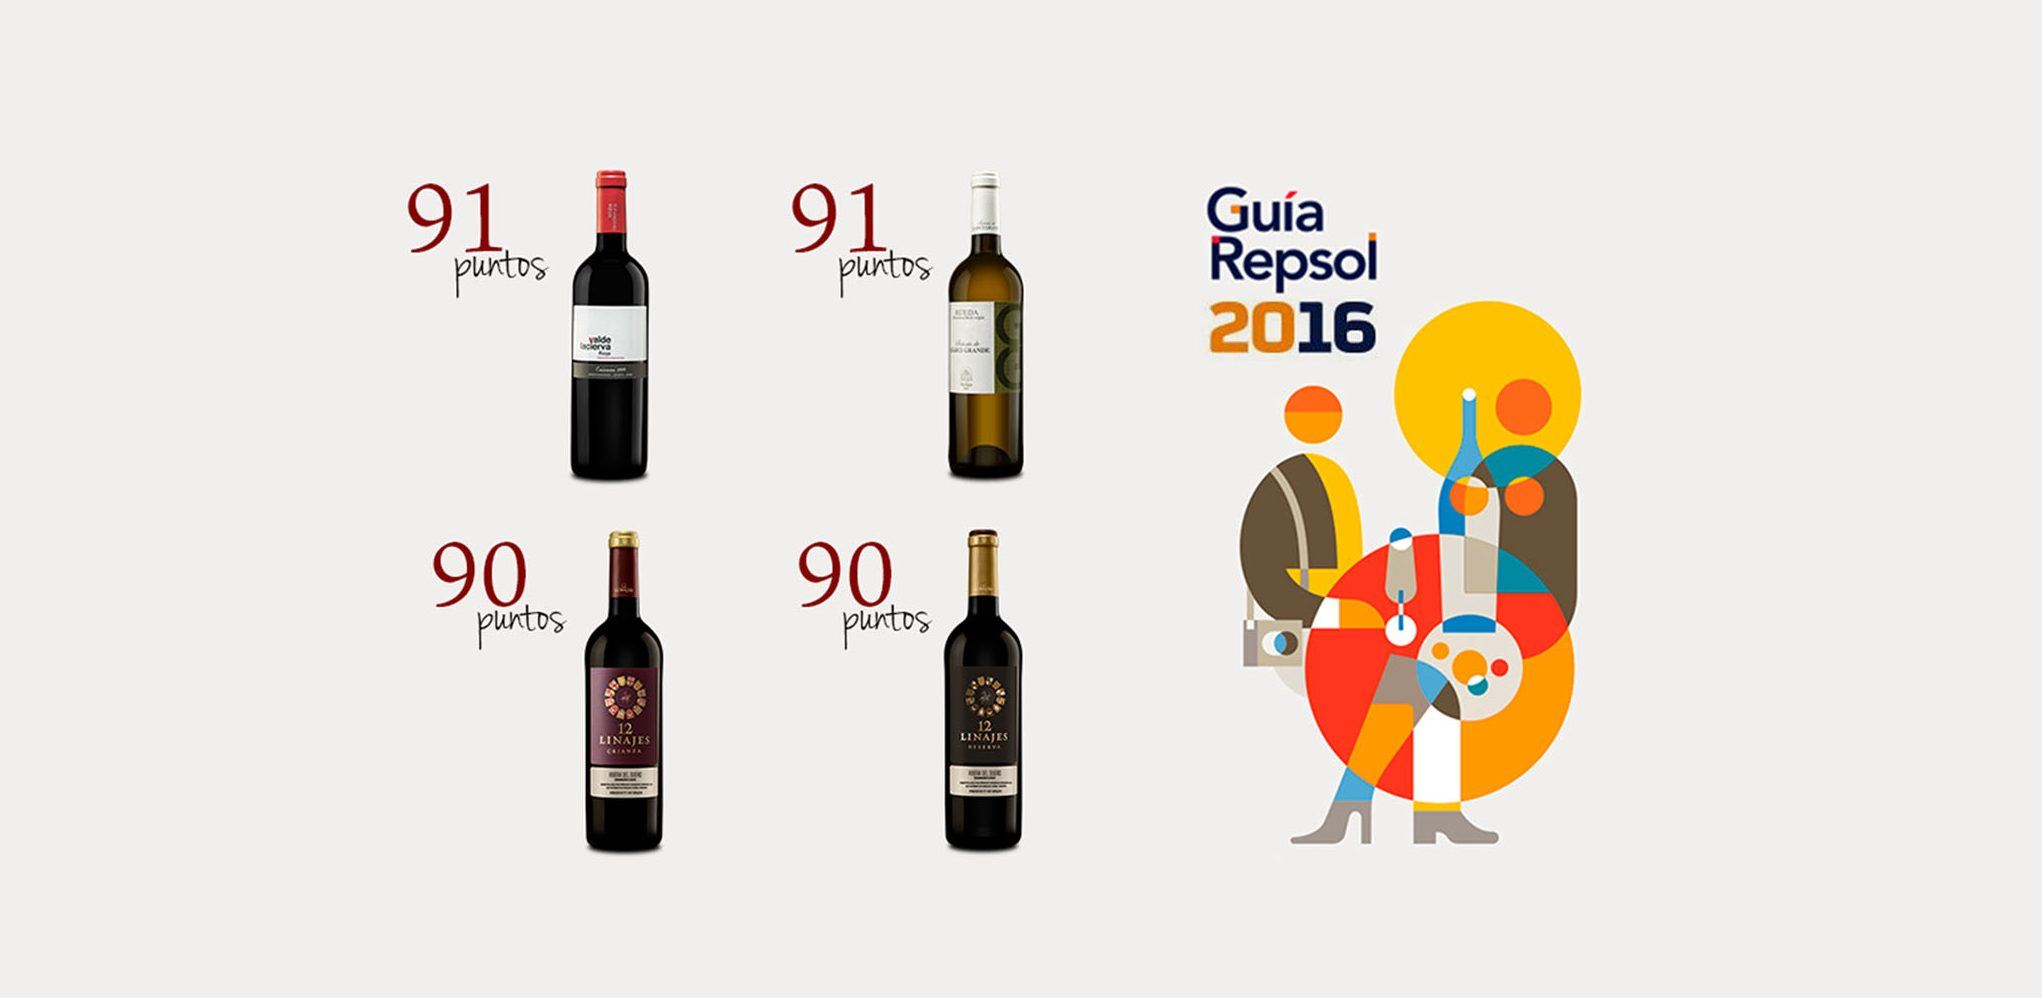 Repsol Guide 2016: New recognitions